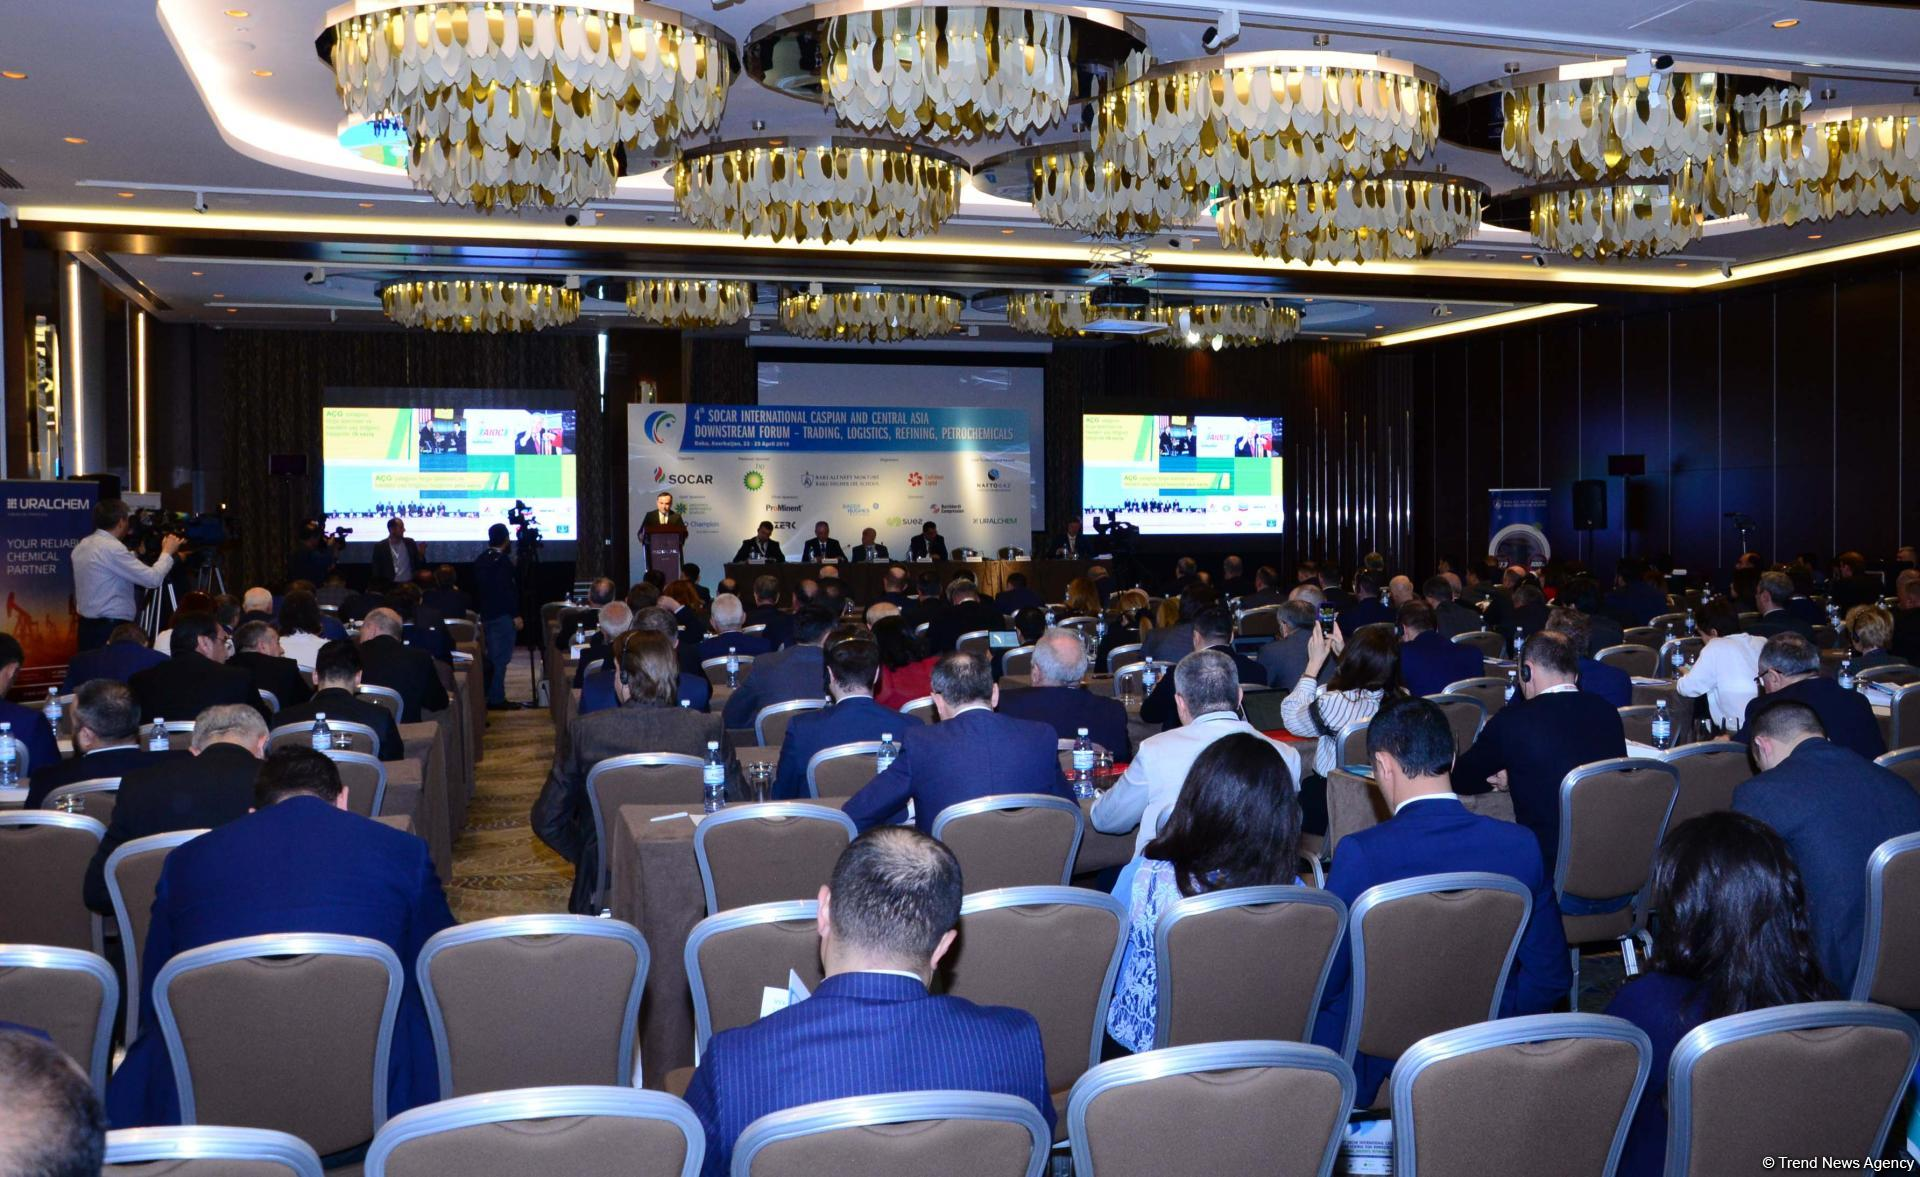 Final investment decision on SOCAR GPC to be made before end of year